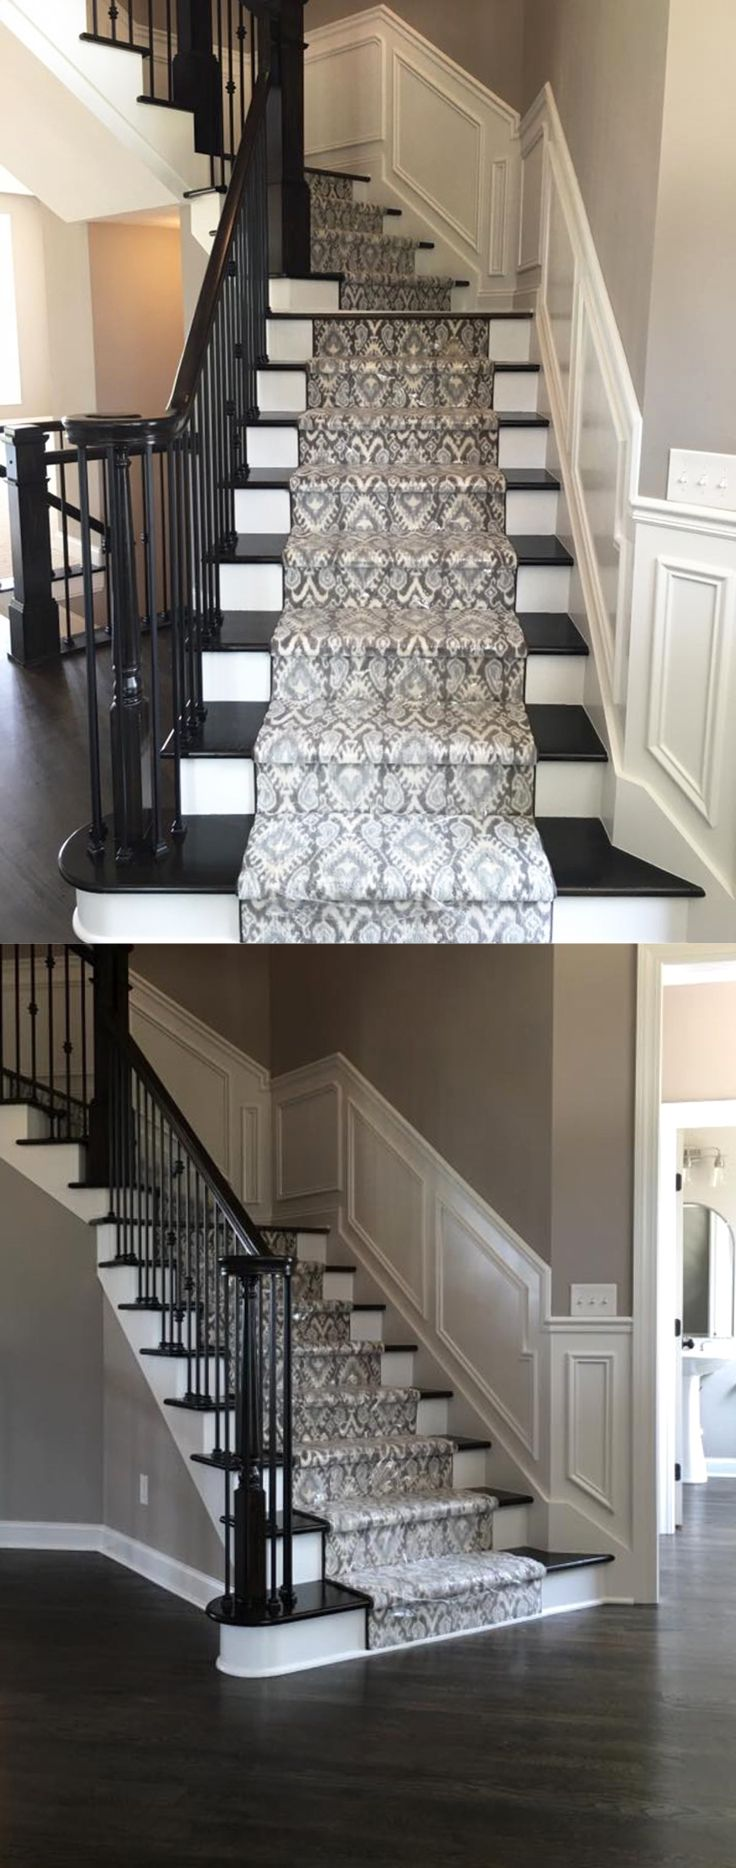 Best Beautiful Patterned Stair Runner On Dark Stained Stairs 640 x 480